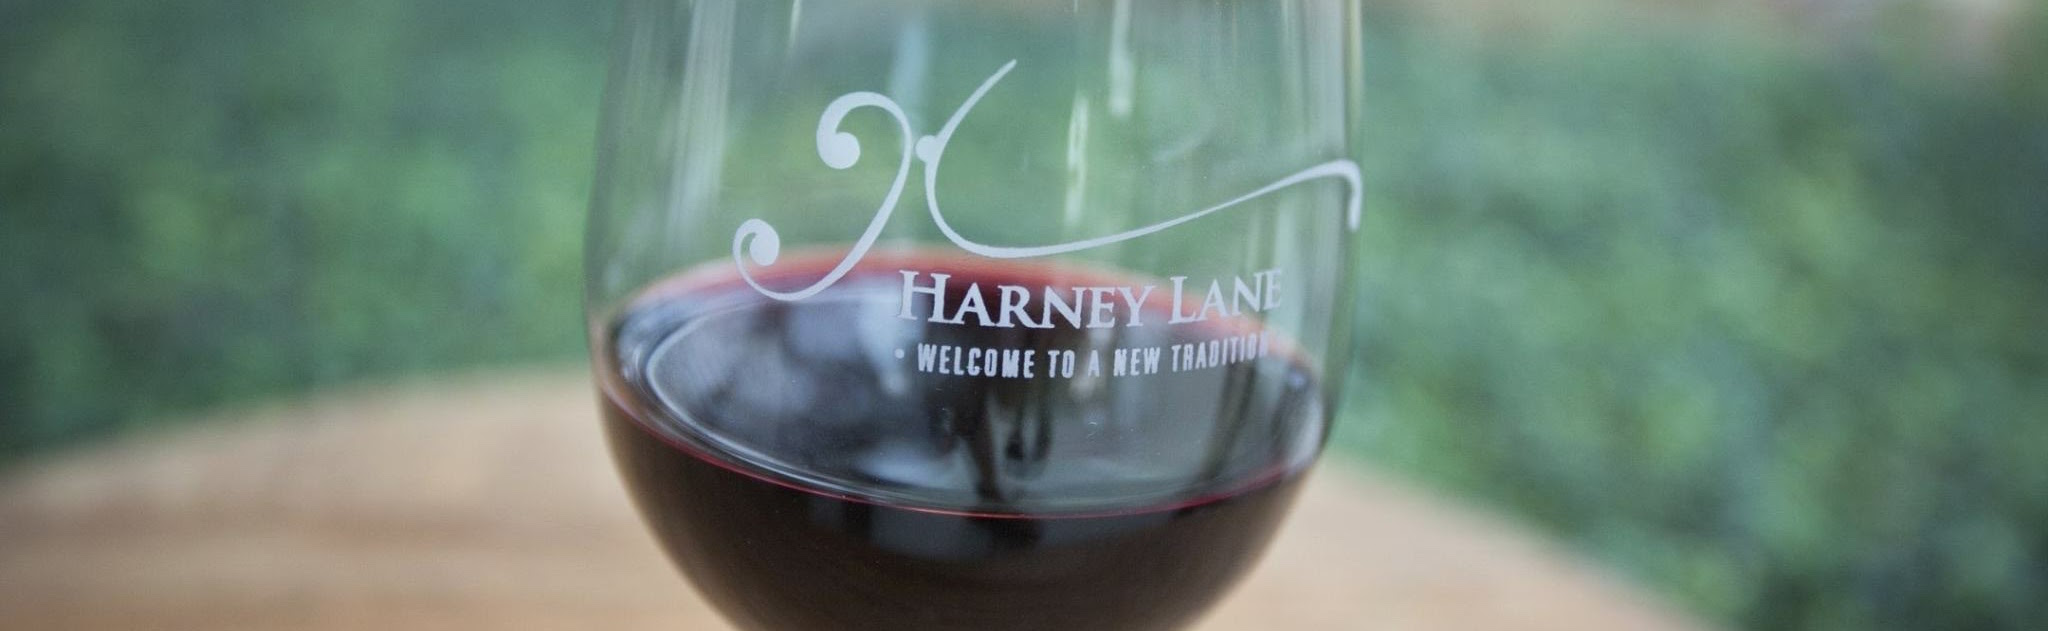 Etched Wine Glass, Harney Lane Winery